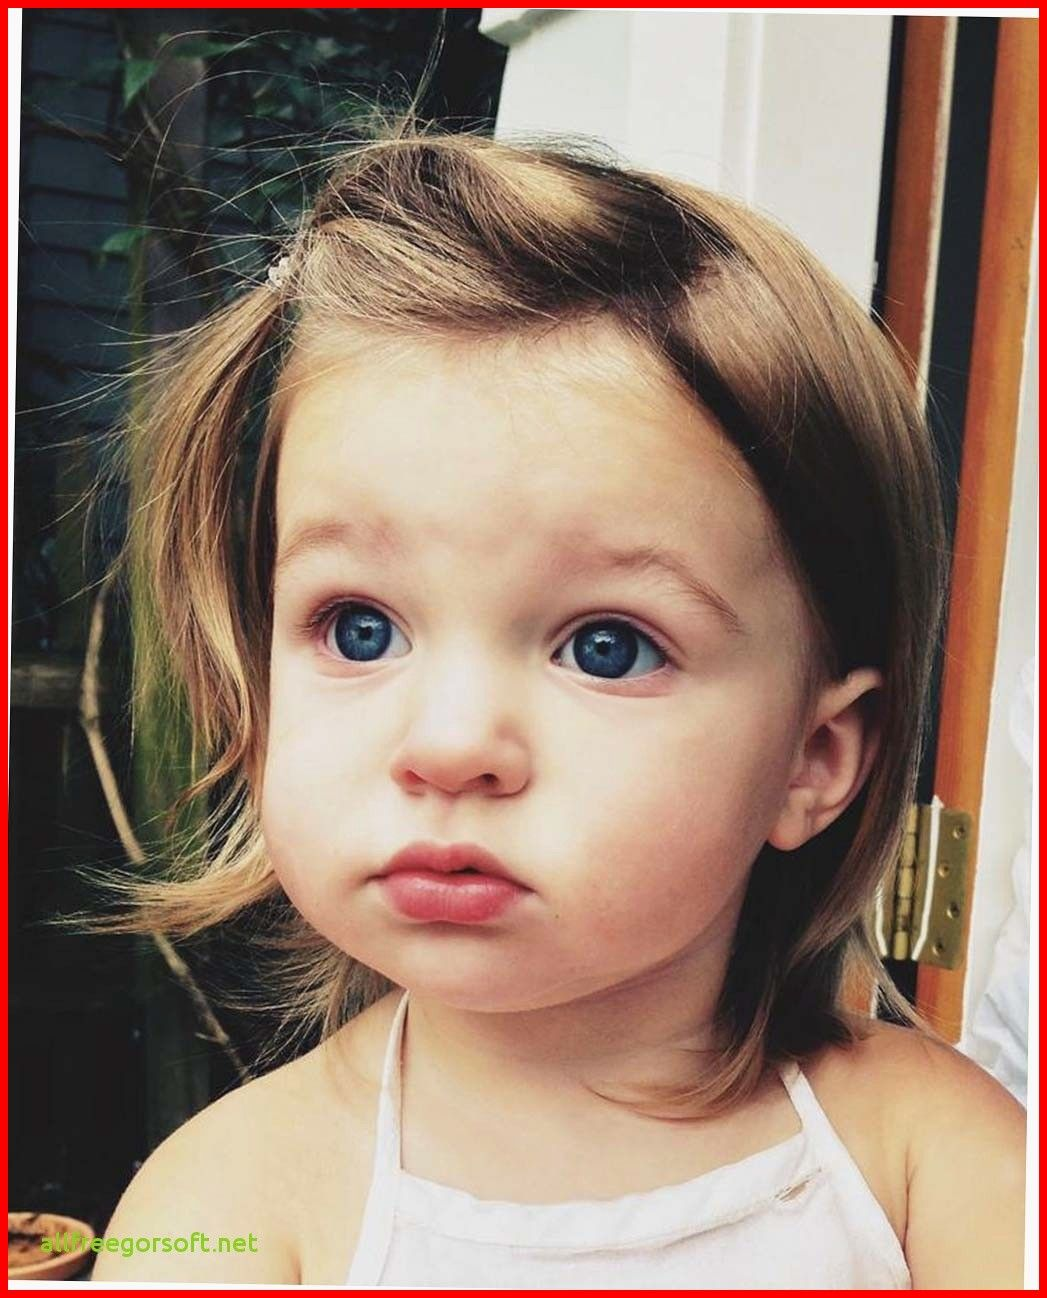 1 Year Old Baby Girl Hairstyles 42300 ... in 2020 | Baby girl hairstyles, Baby girl haircuts ...